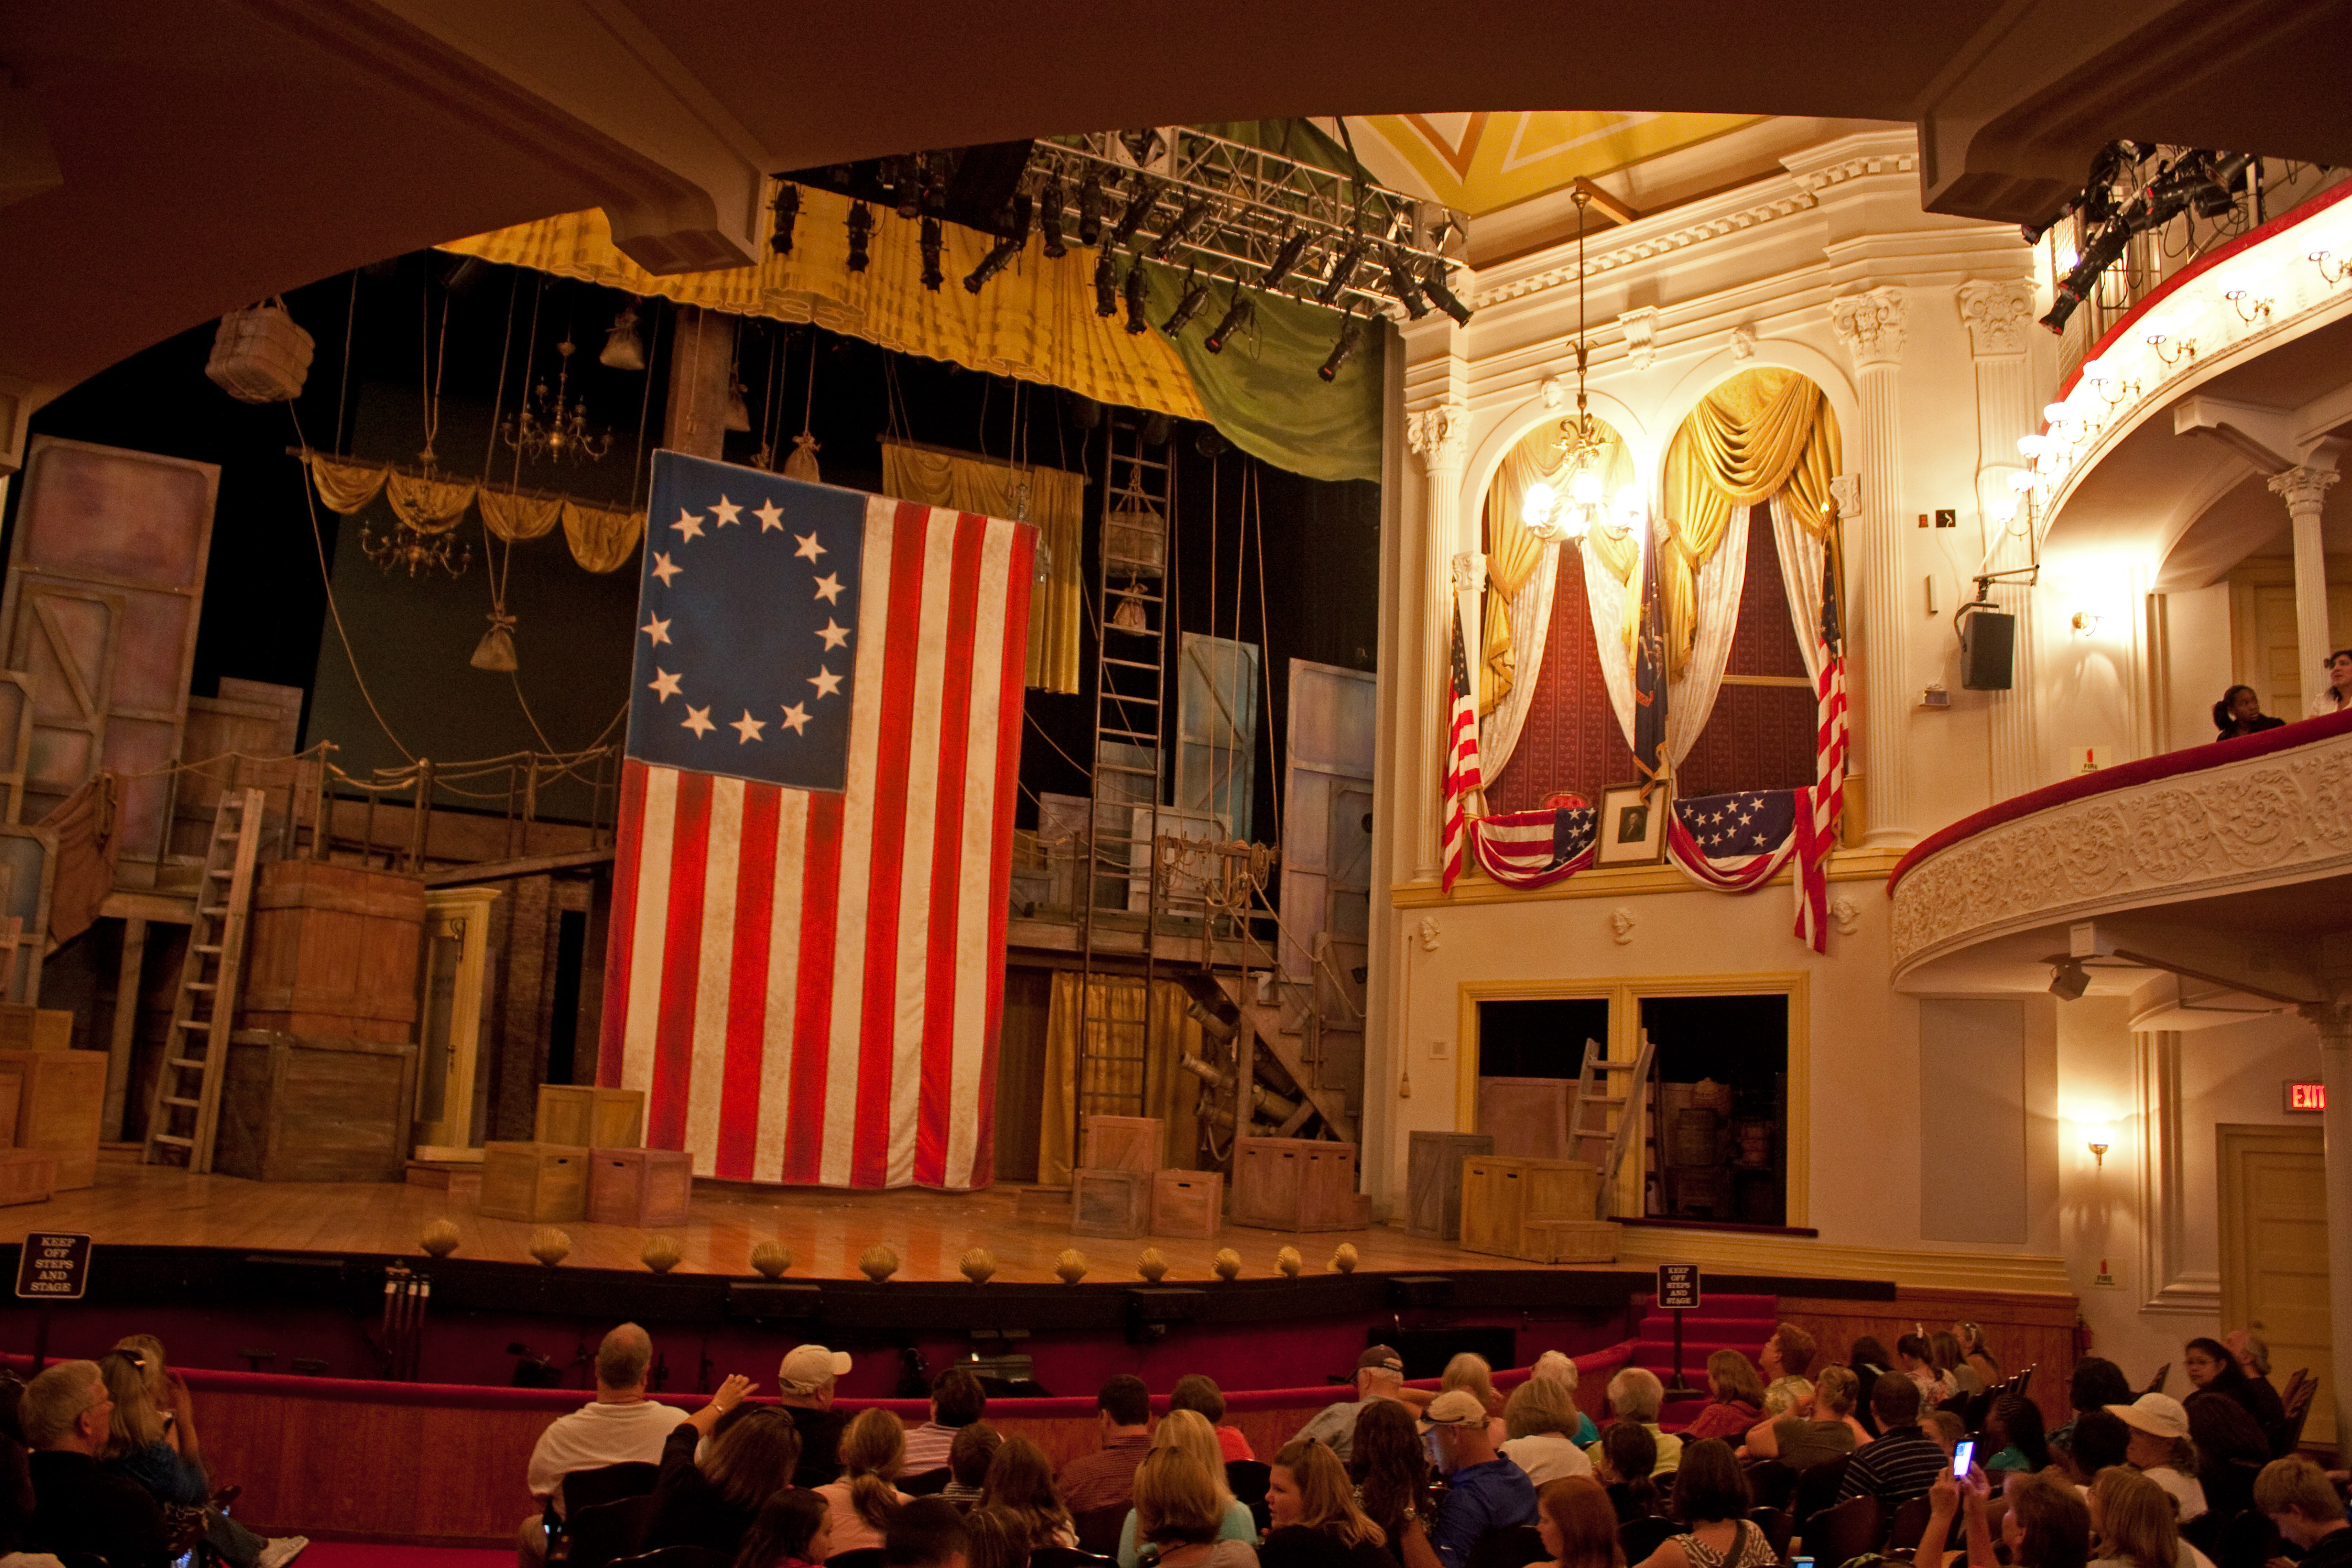 Abraham Lincoln Theater Tour